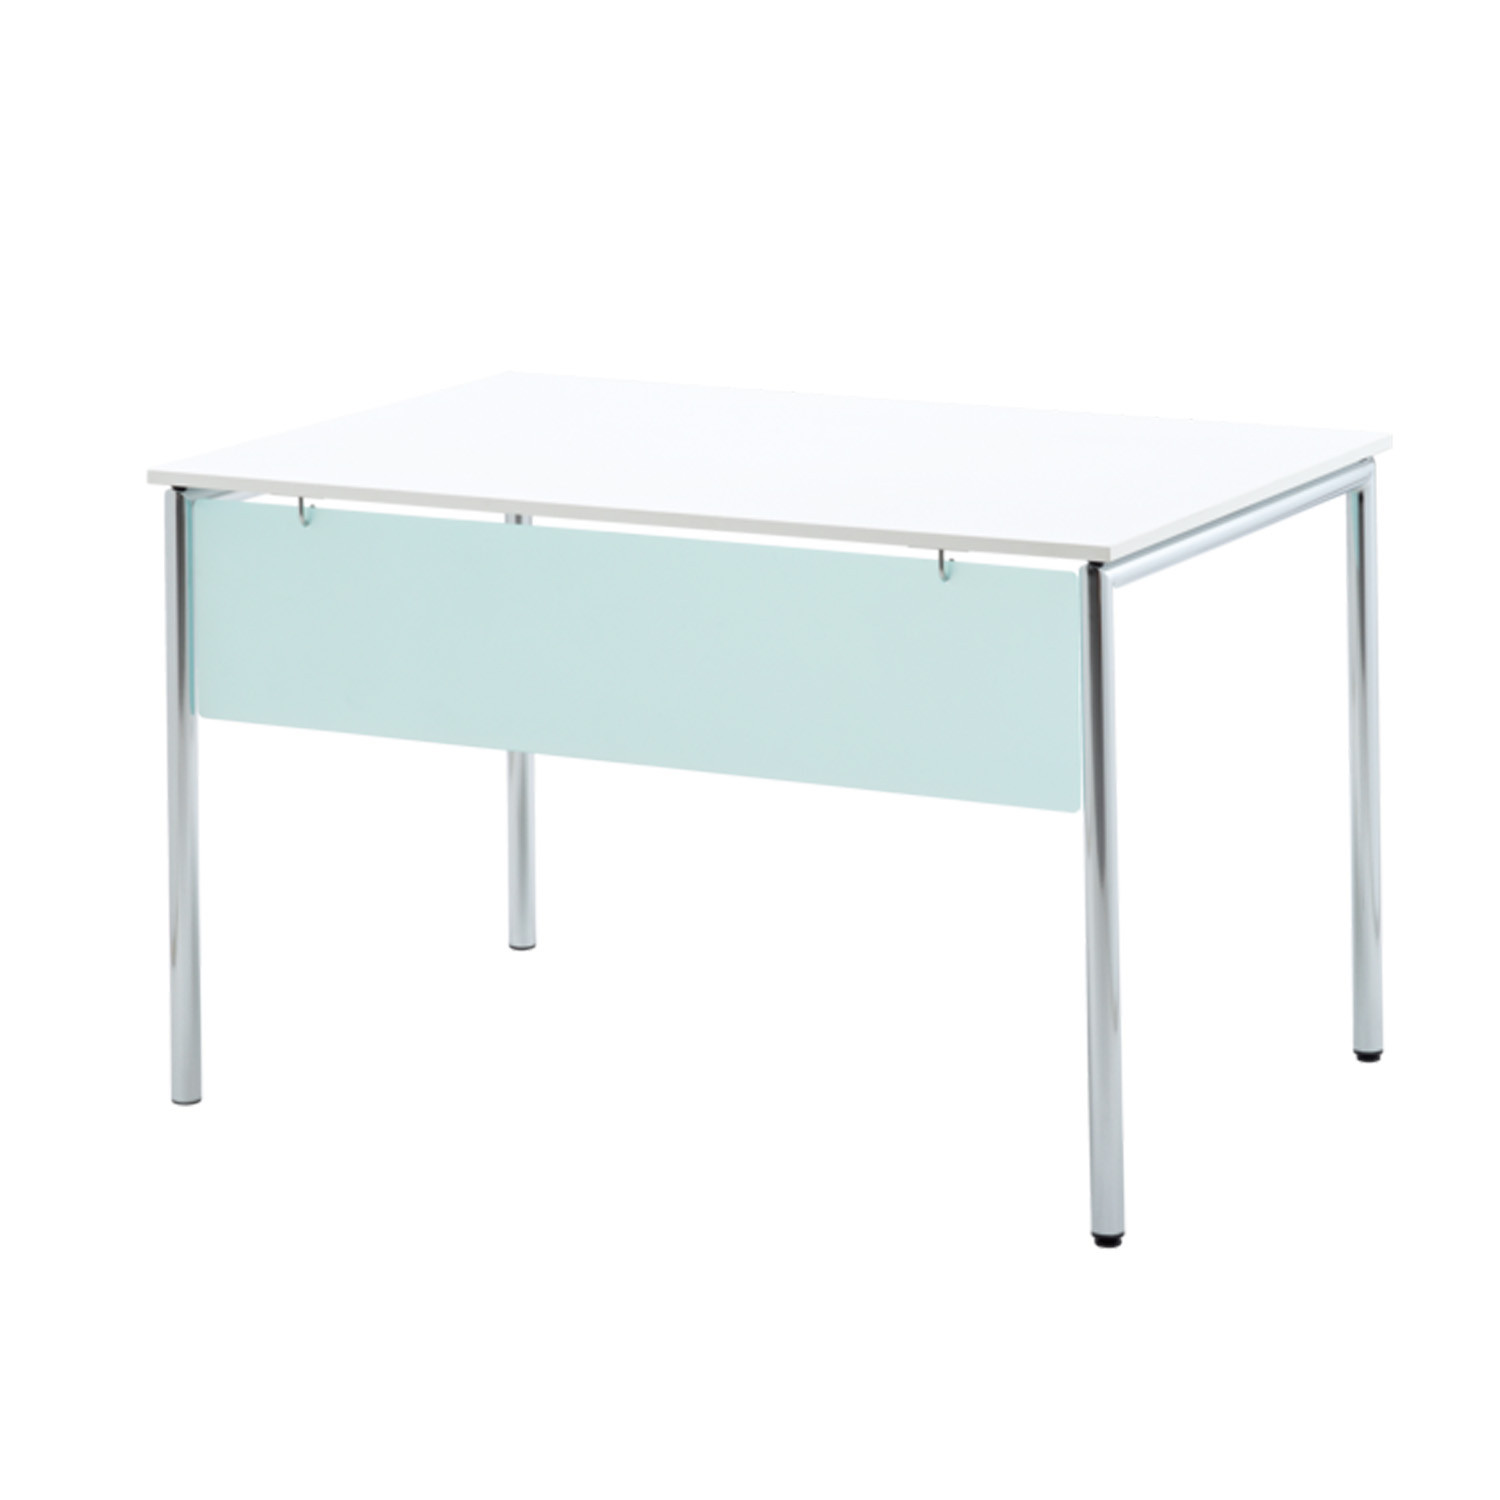 Usu Table with modesty panel